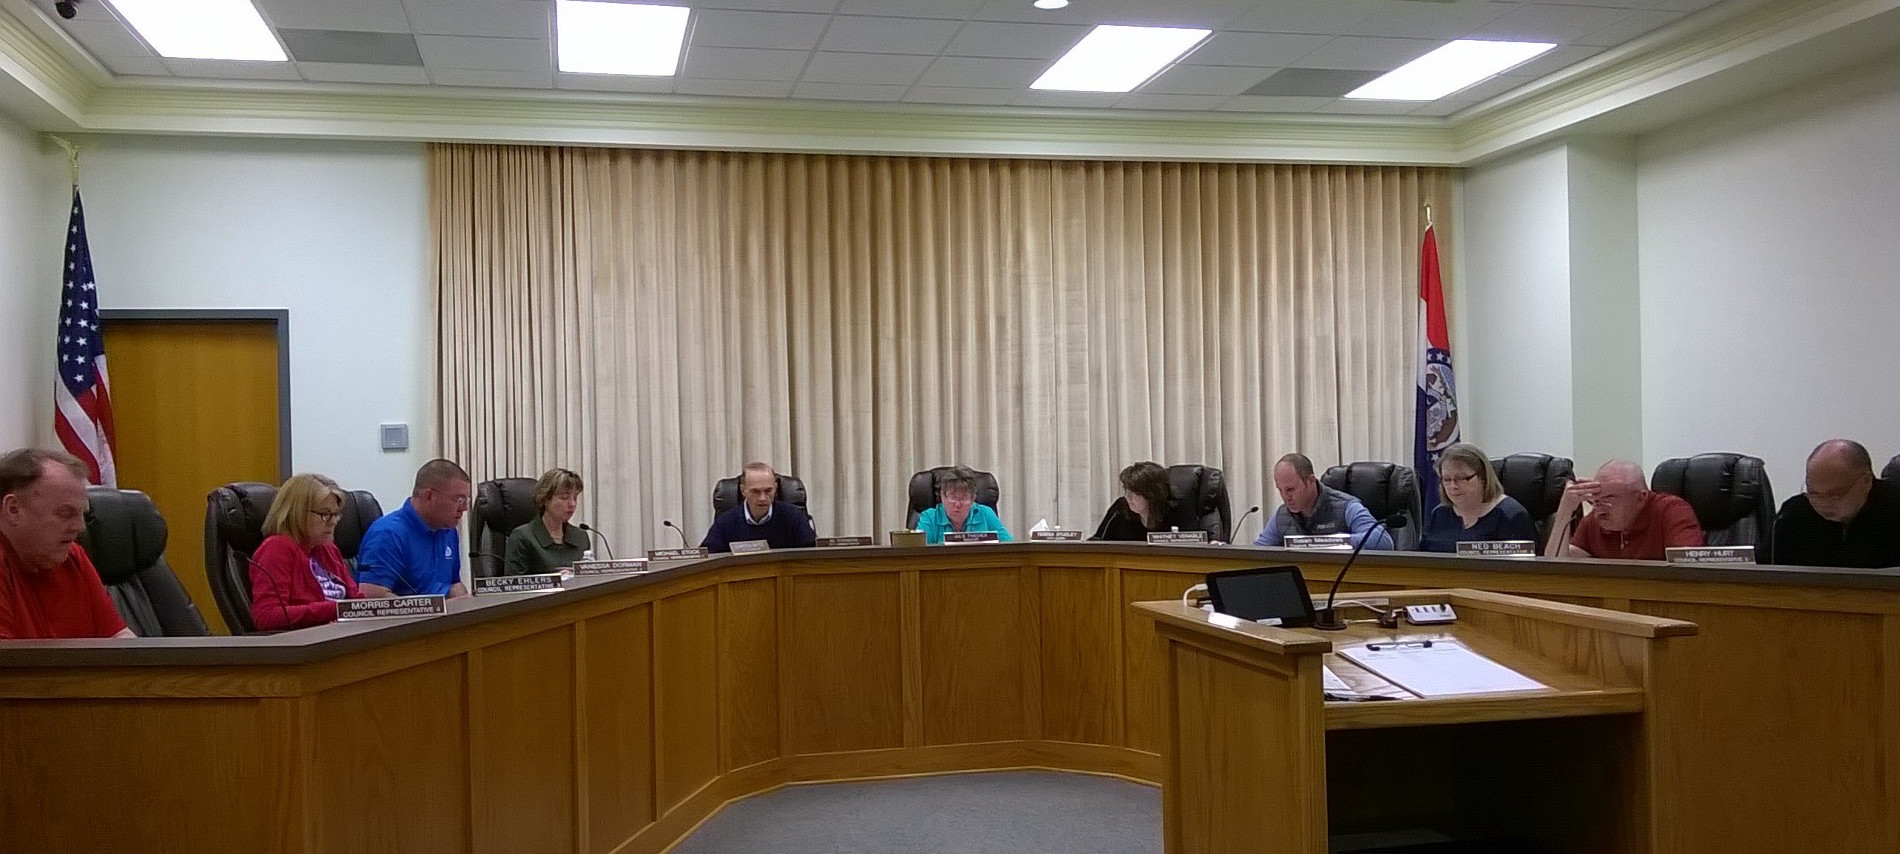 Boonville council members approve construction of Central Missouri Cancer Memorial Park